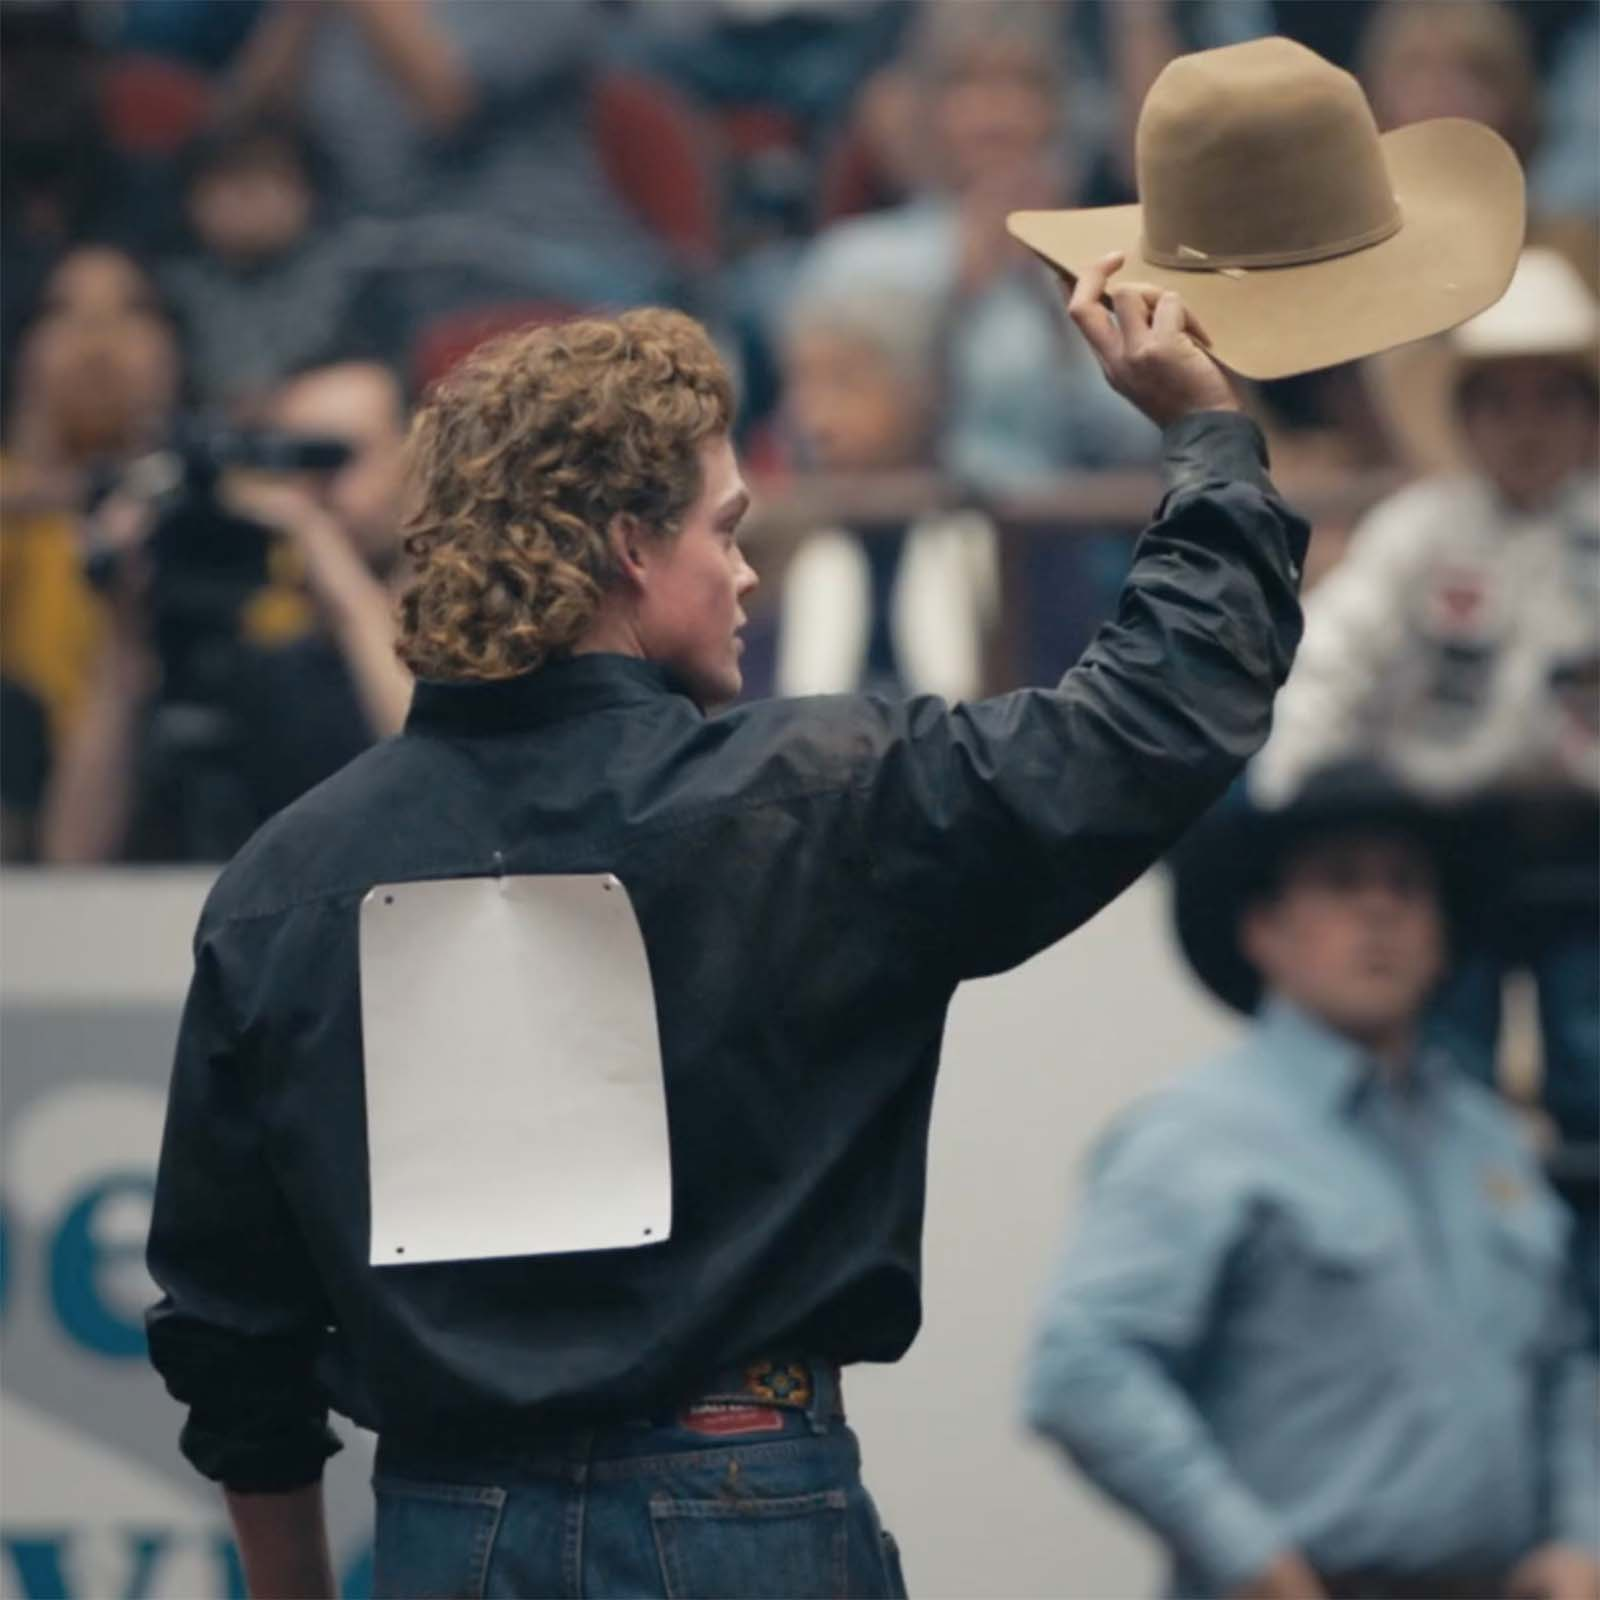 CINCH athlete raises his hat to the crowd after steer wrestling